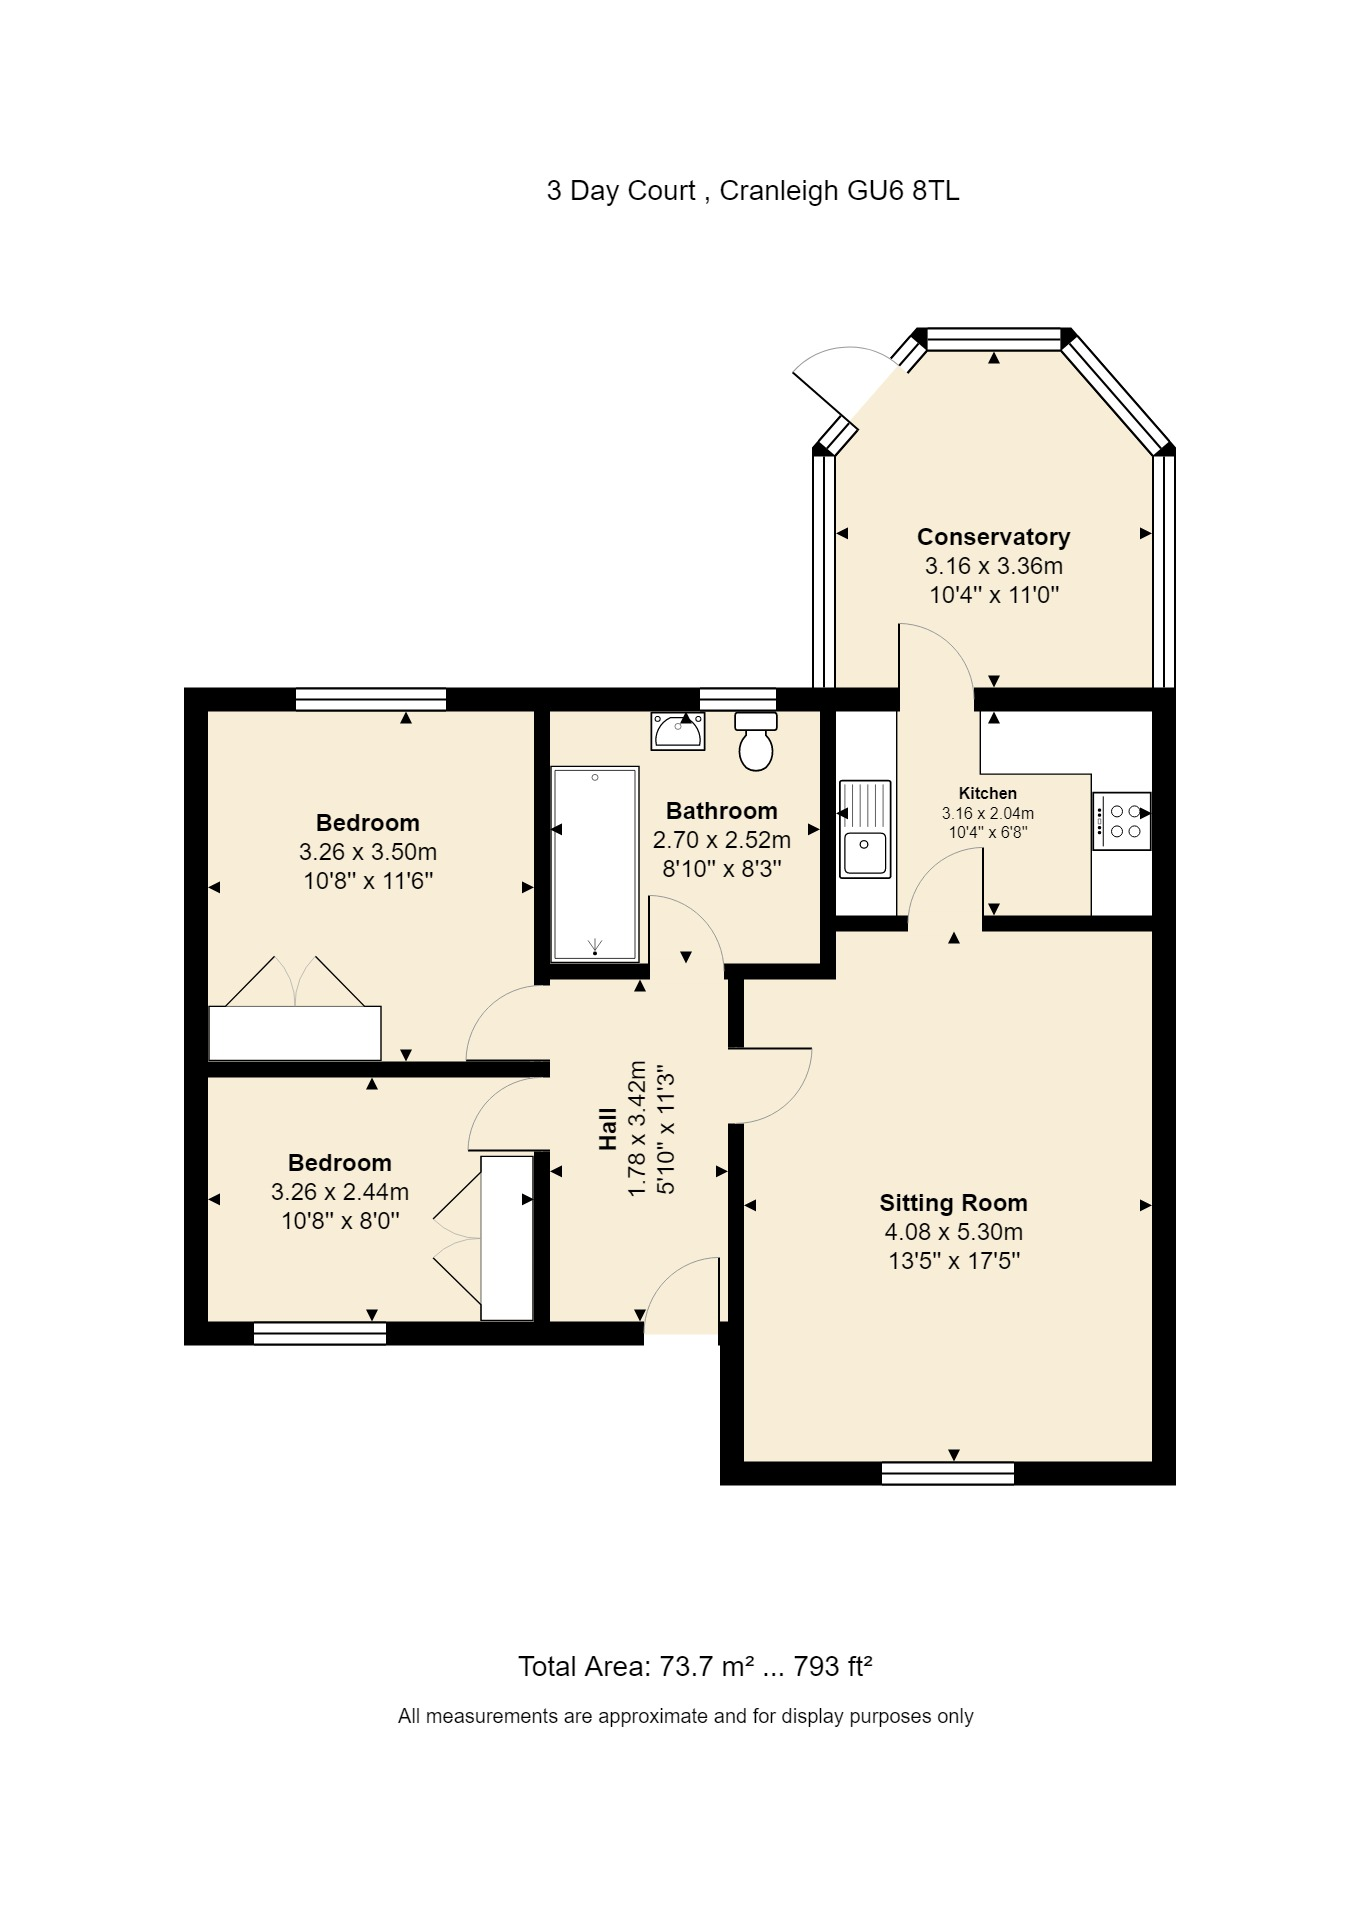 3 Day Court Floorplan